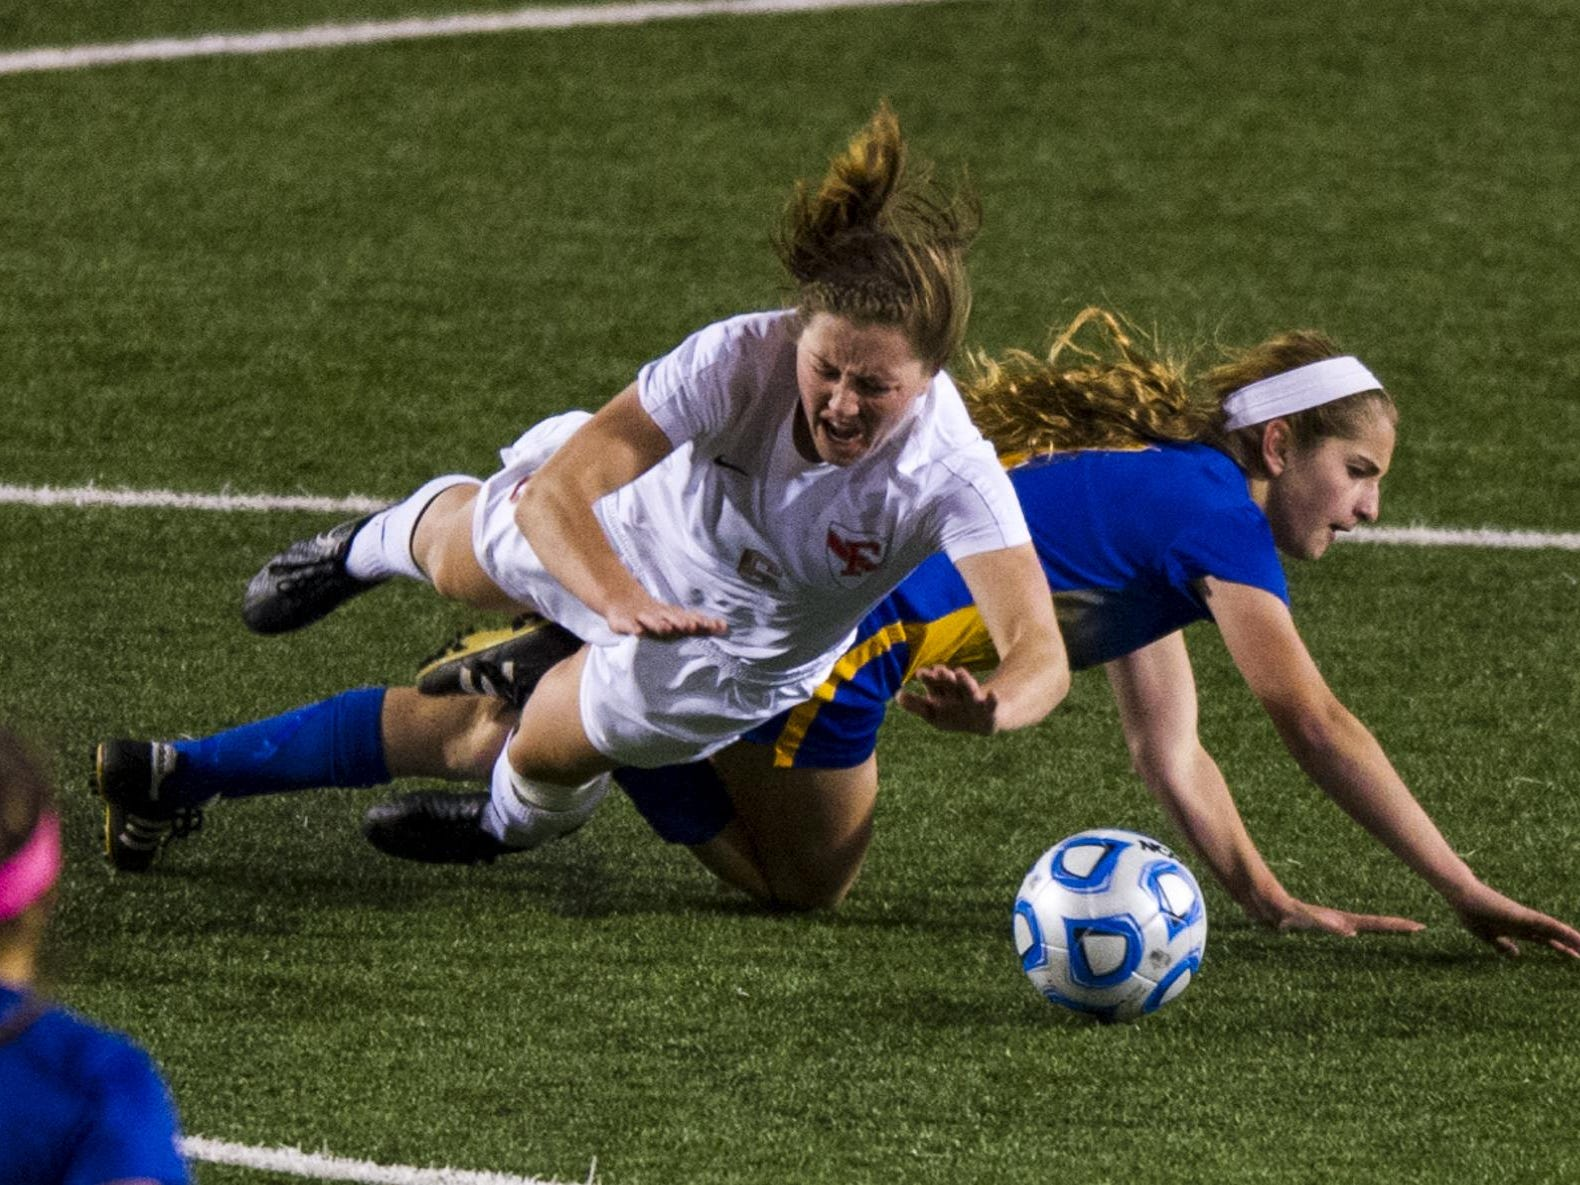 Fishers High School junior Brady Riley (6) crashes to the turf after colliding with Carmel High School sophomore Emily Roberts (7) during the second half of action. Carmel High School competed against Fishers High School in the 2014 IHSAA Class 2A Girls' Soccer State Championship game at Michael A. Carroll Track and Soccer Stadium in Indianapolis. Fishers defeated Carmel 1-0.